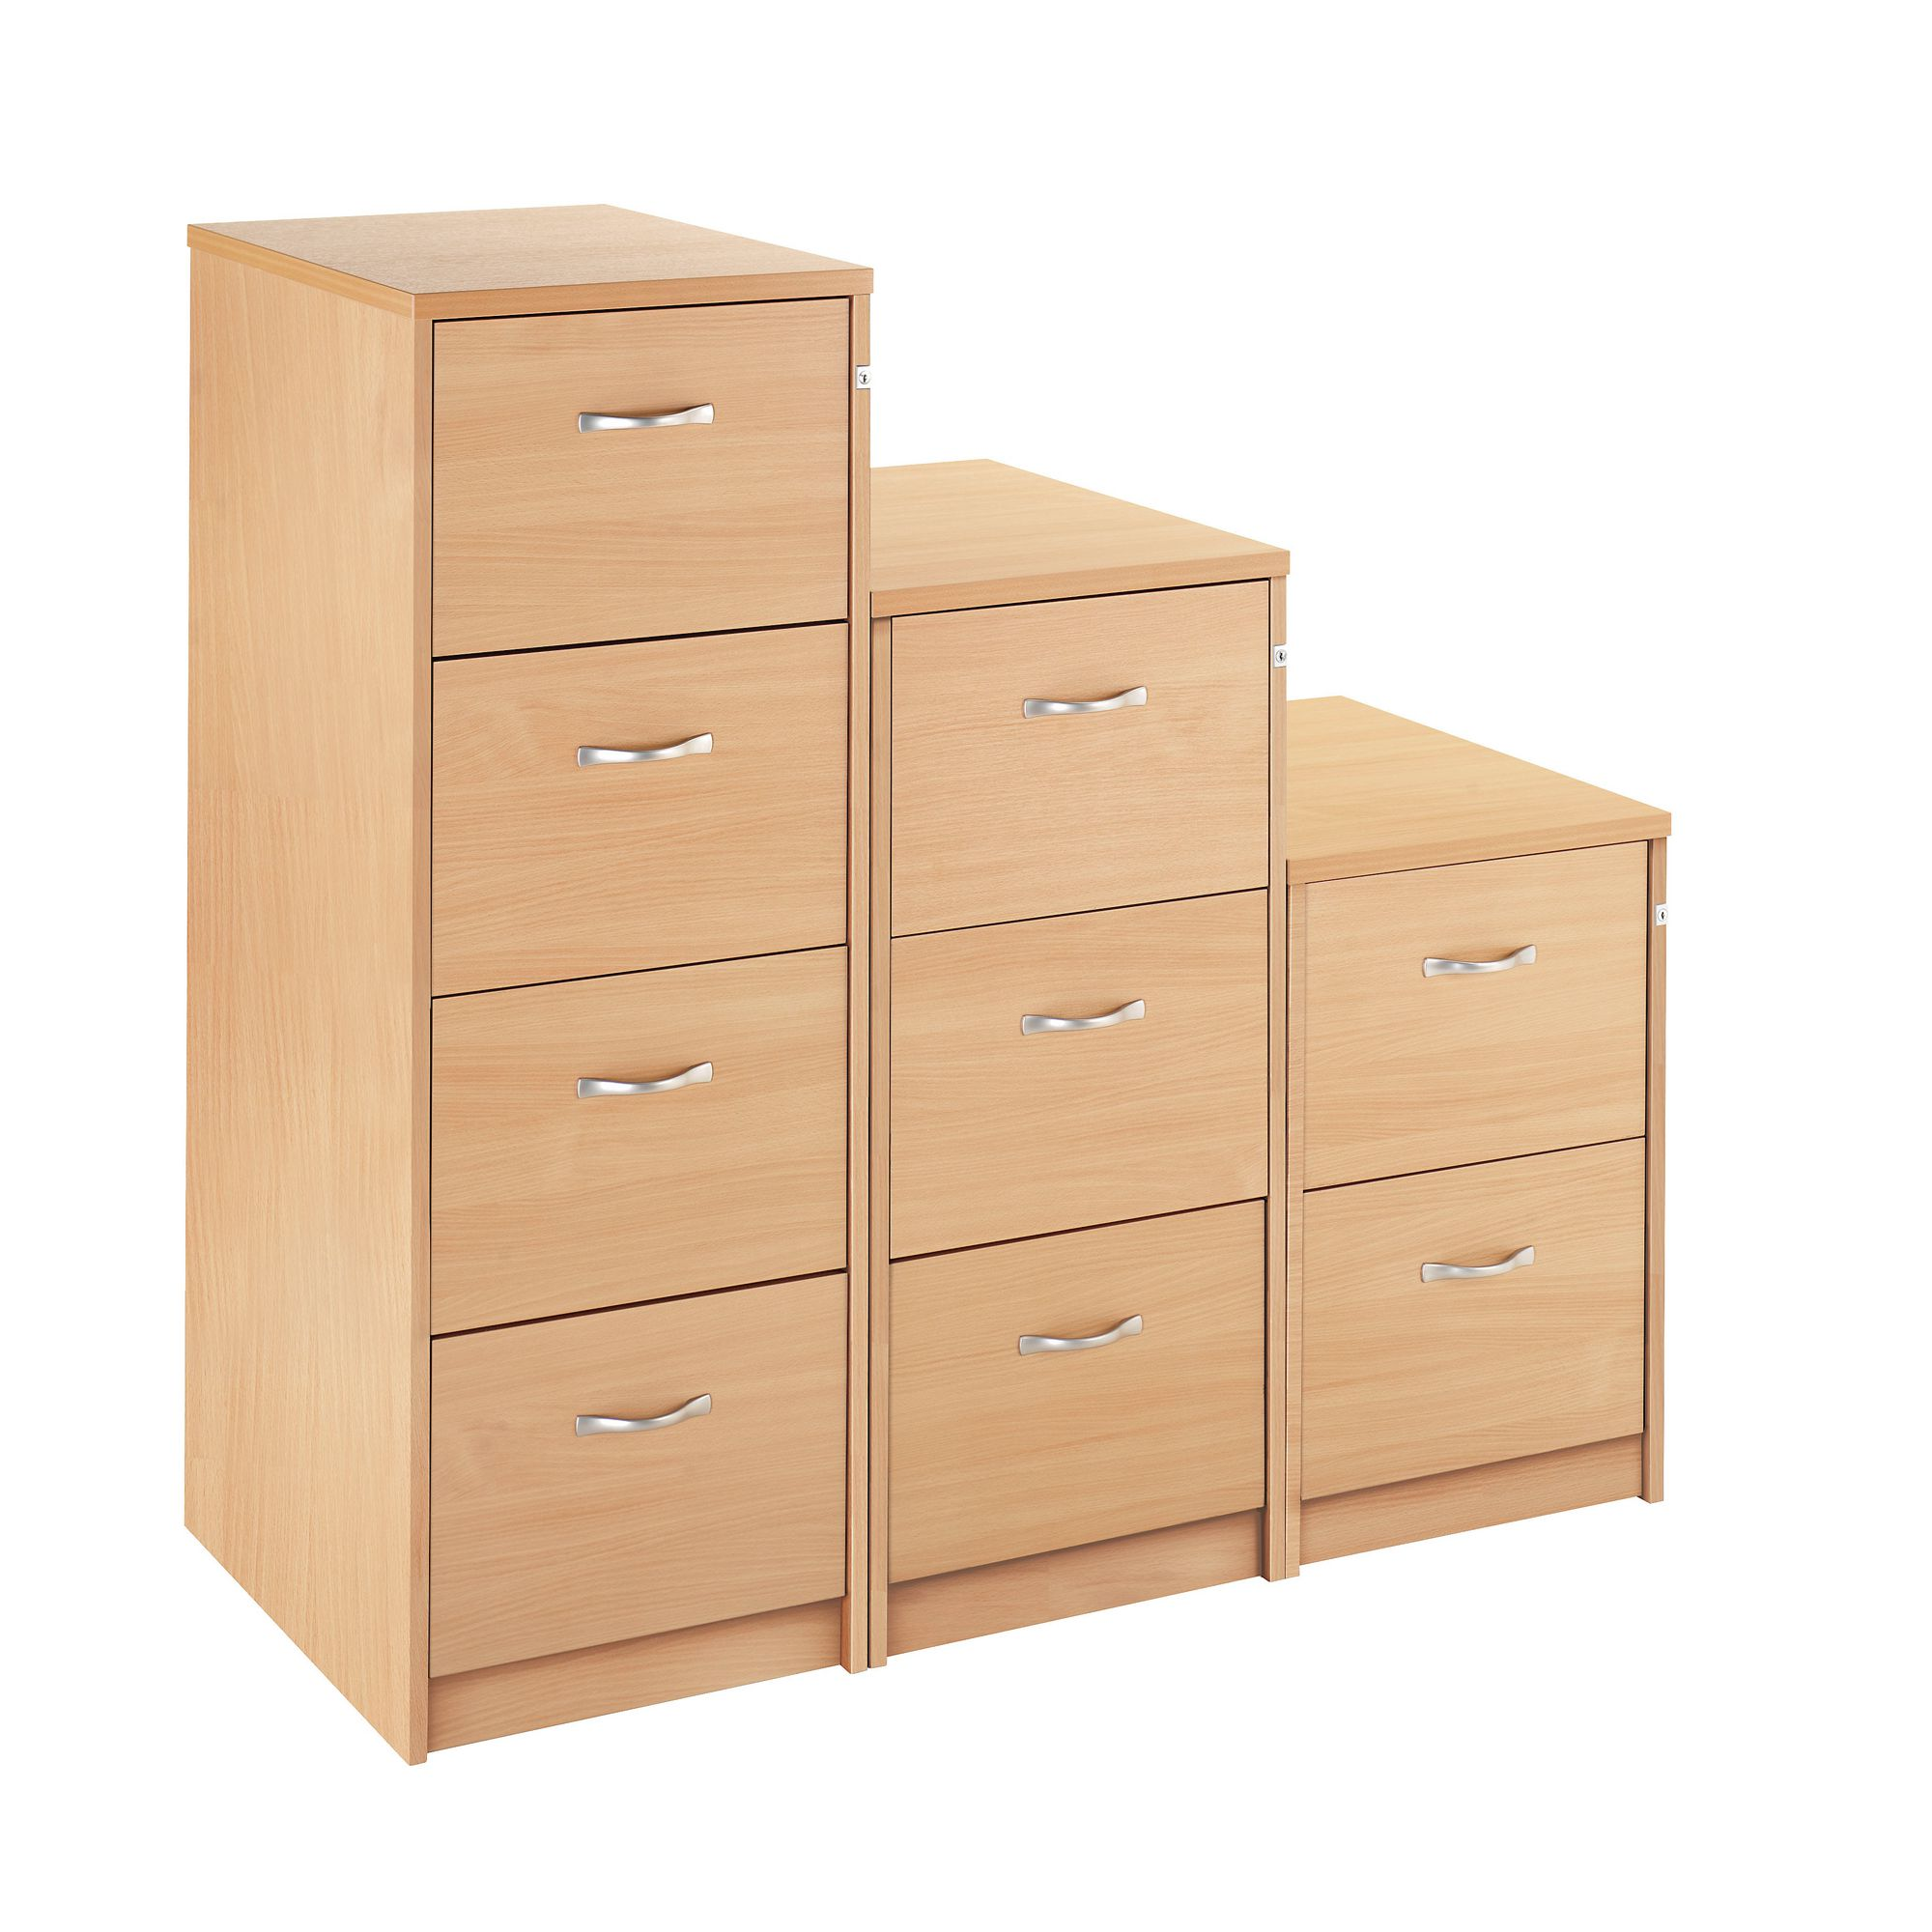 CM Wooden Filing Cabinet 2 Draw Beech